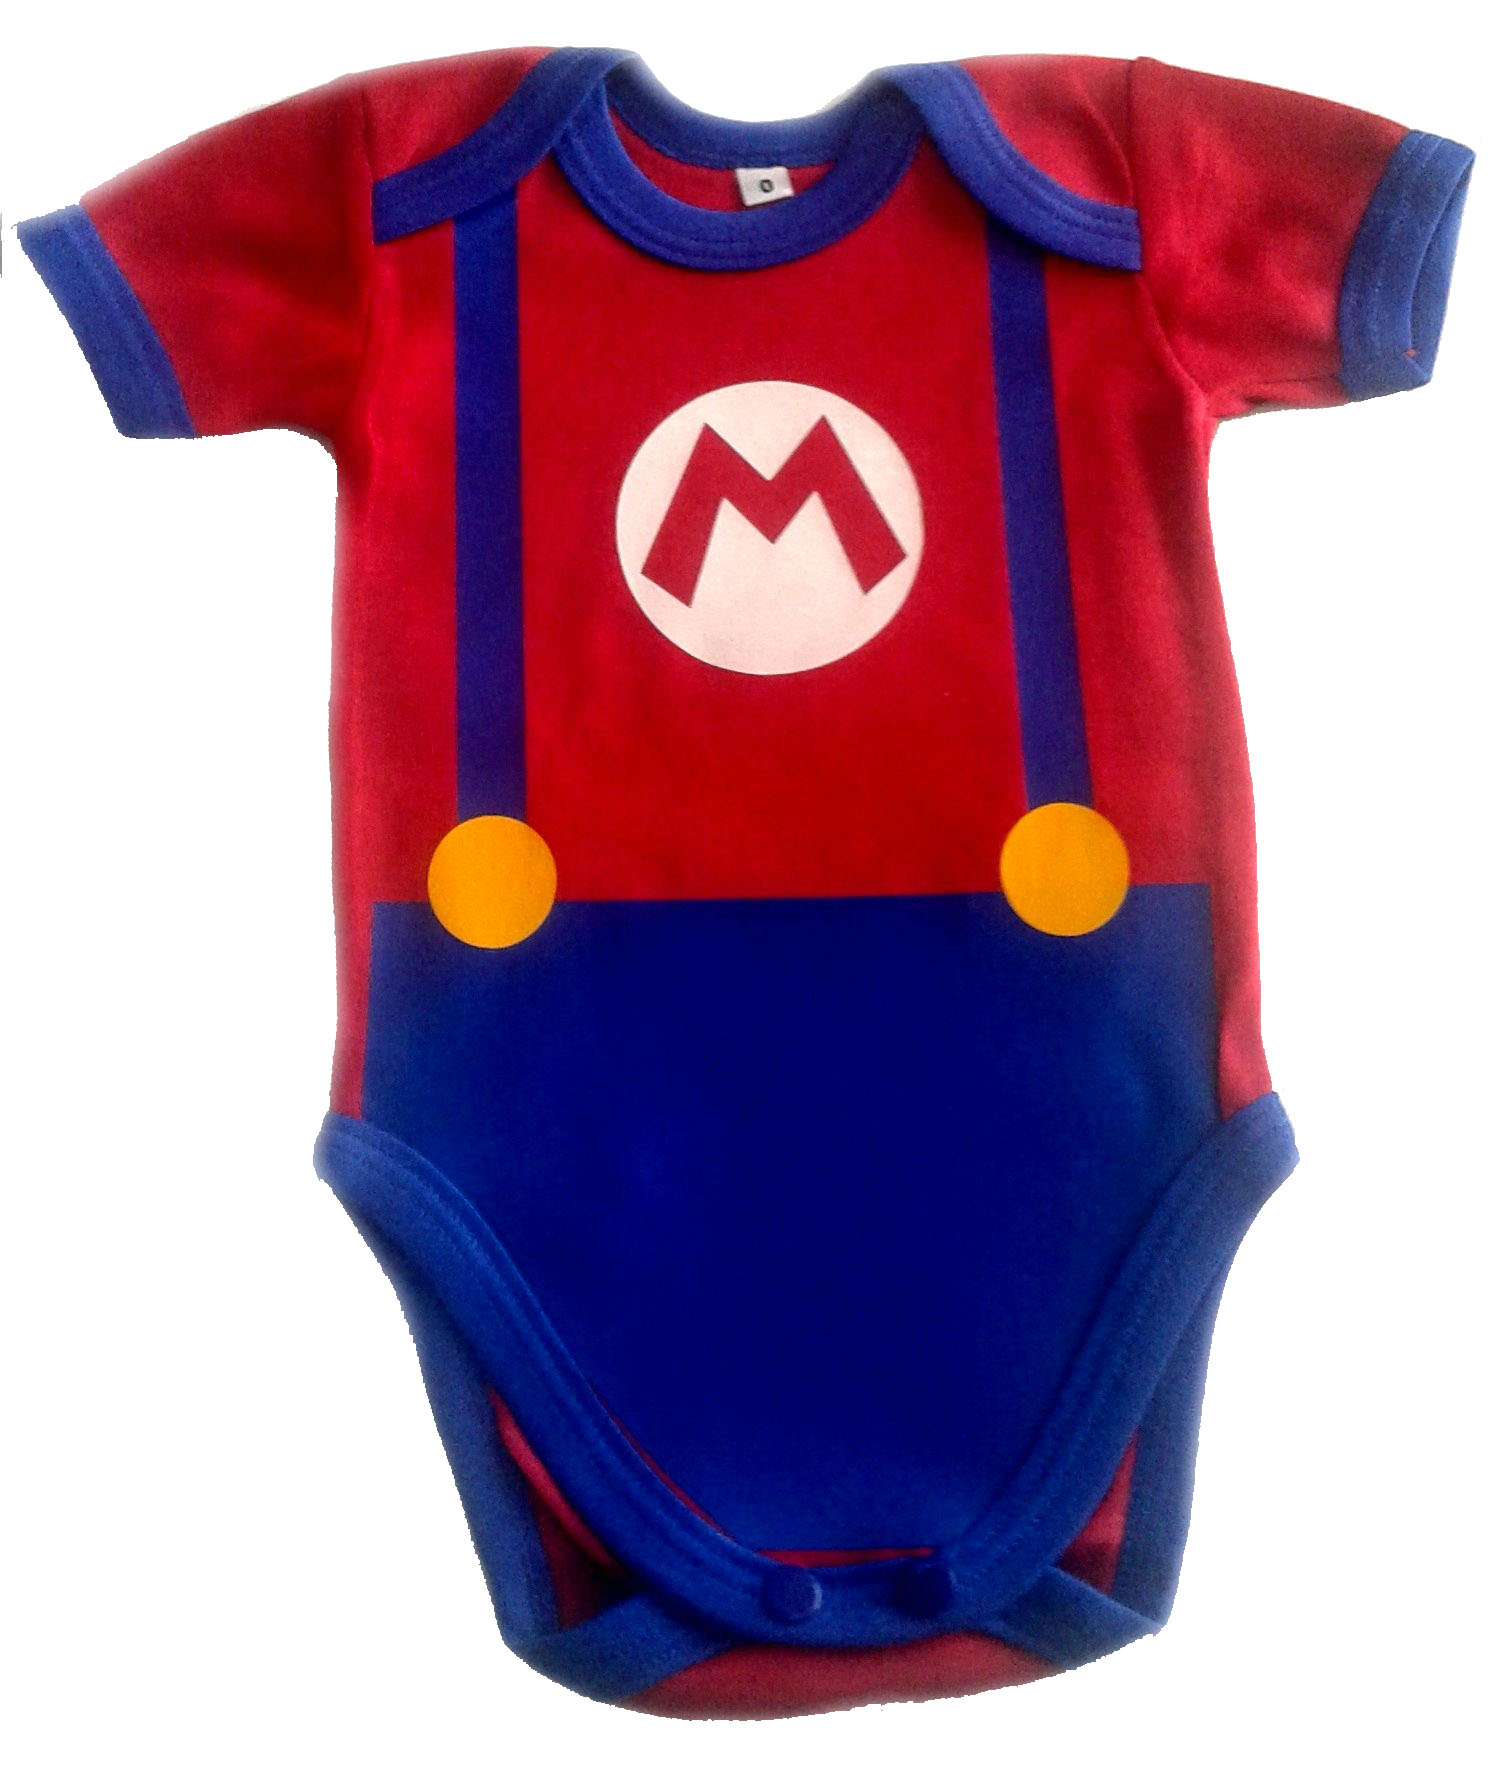 Ropa Para Bebe Body Bodie Mario Bross Baby Monster